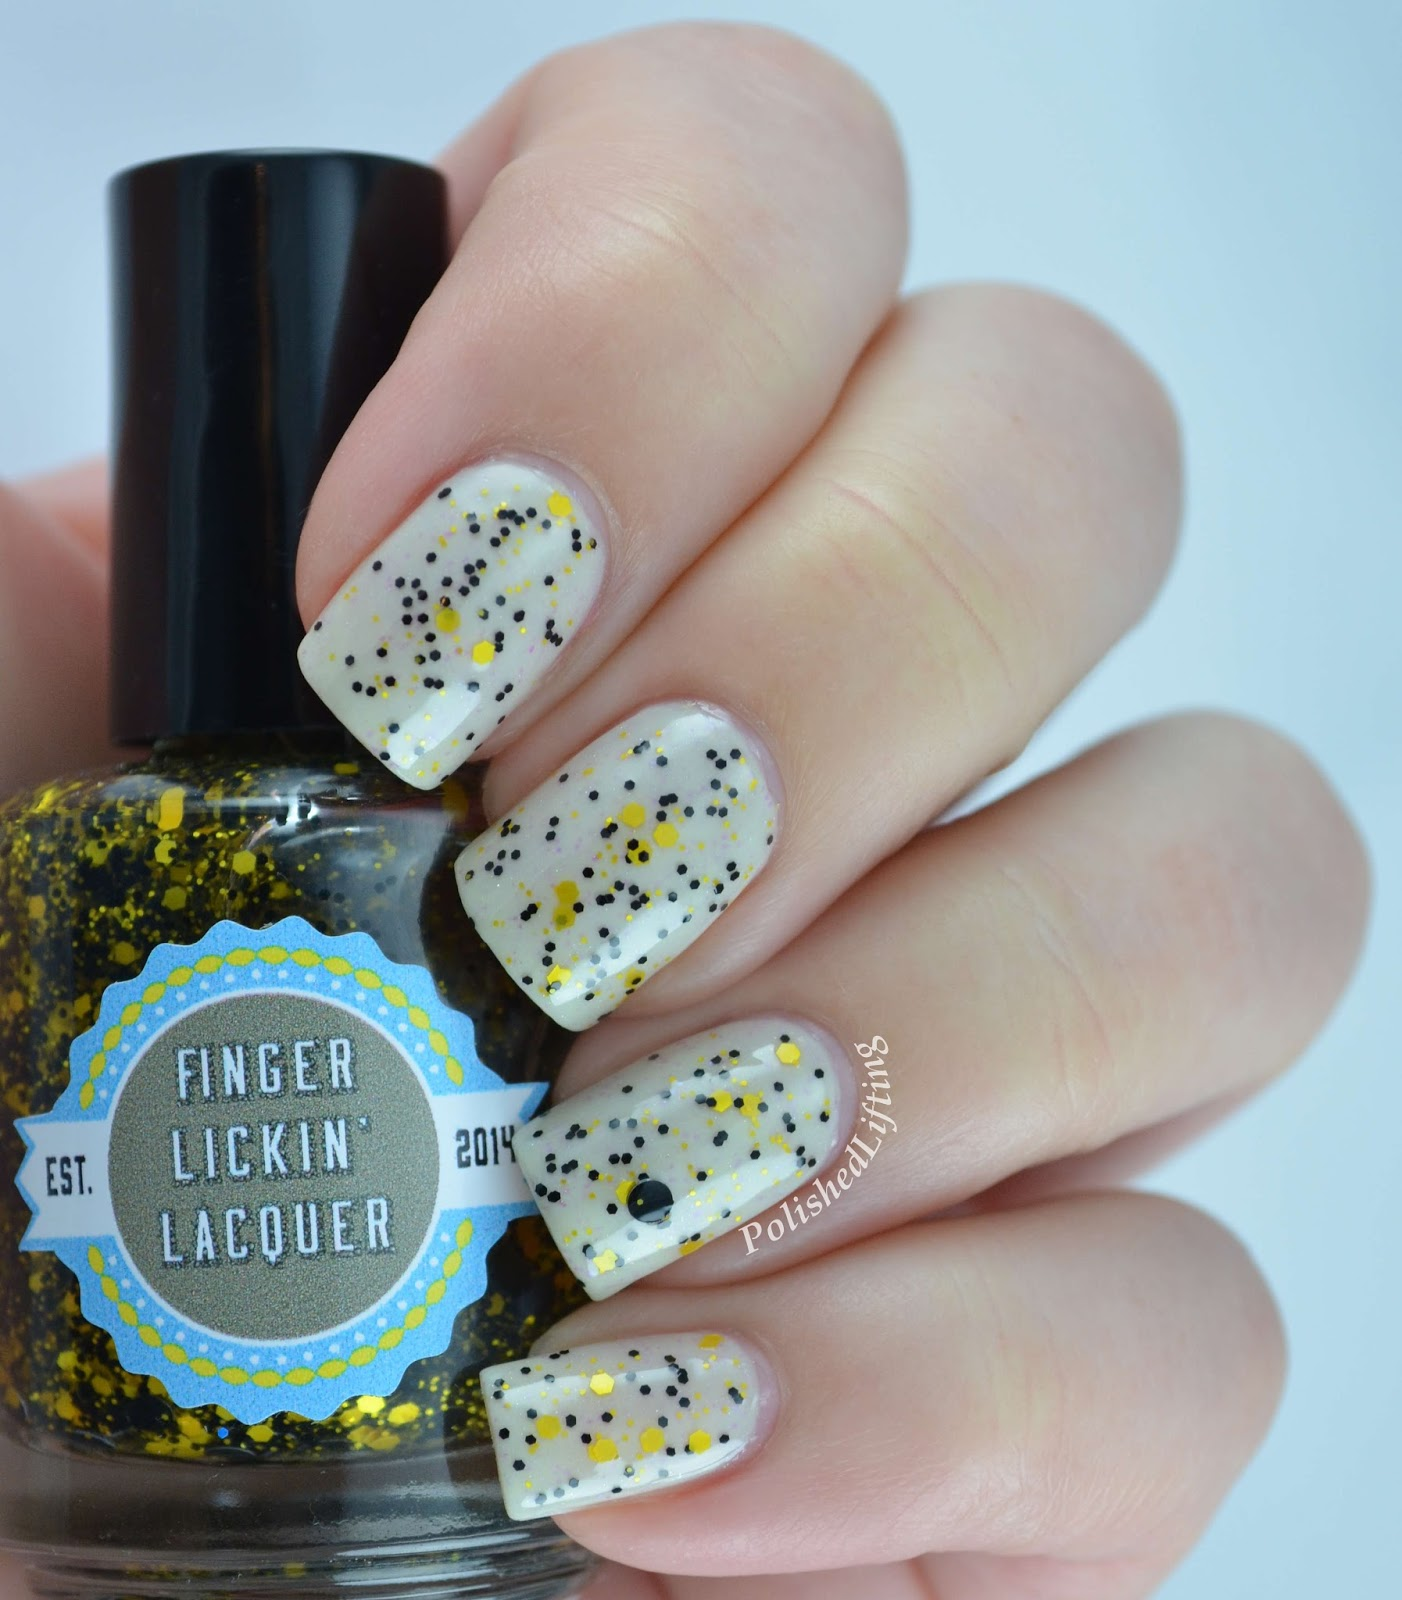 Finger Licking Lacquer She Works Hard For the Honey Quite Contrary Spring In Your Step